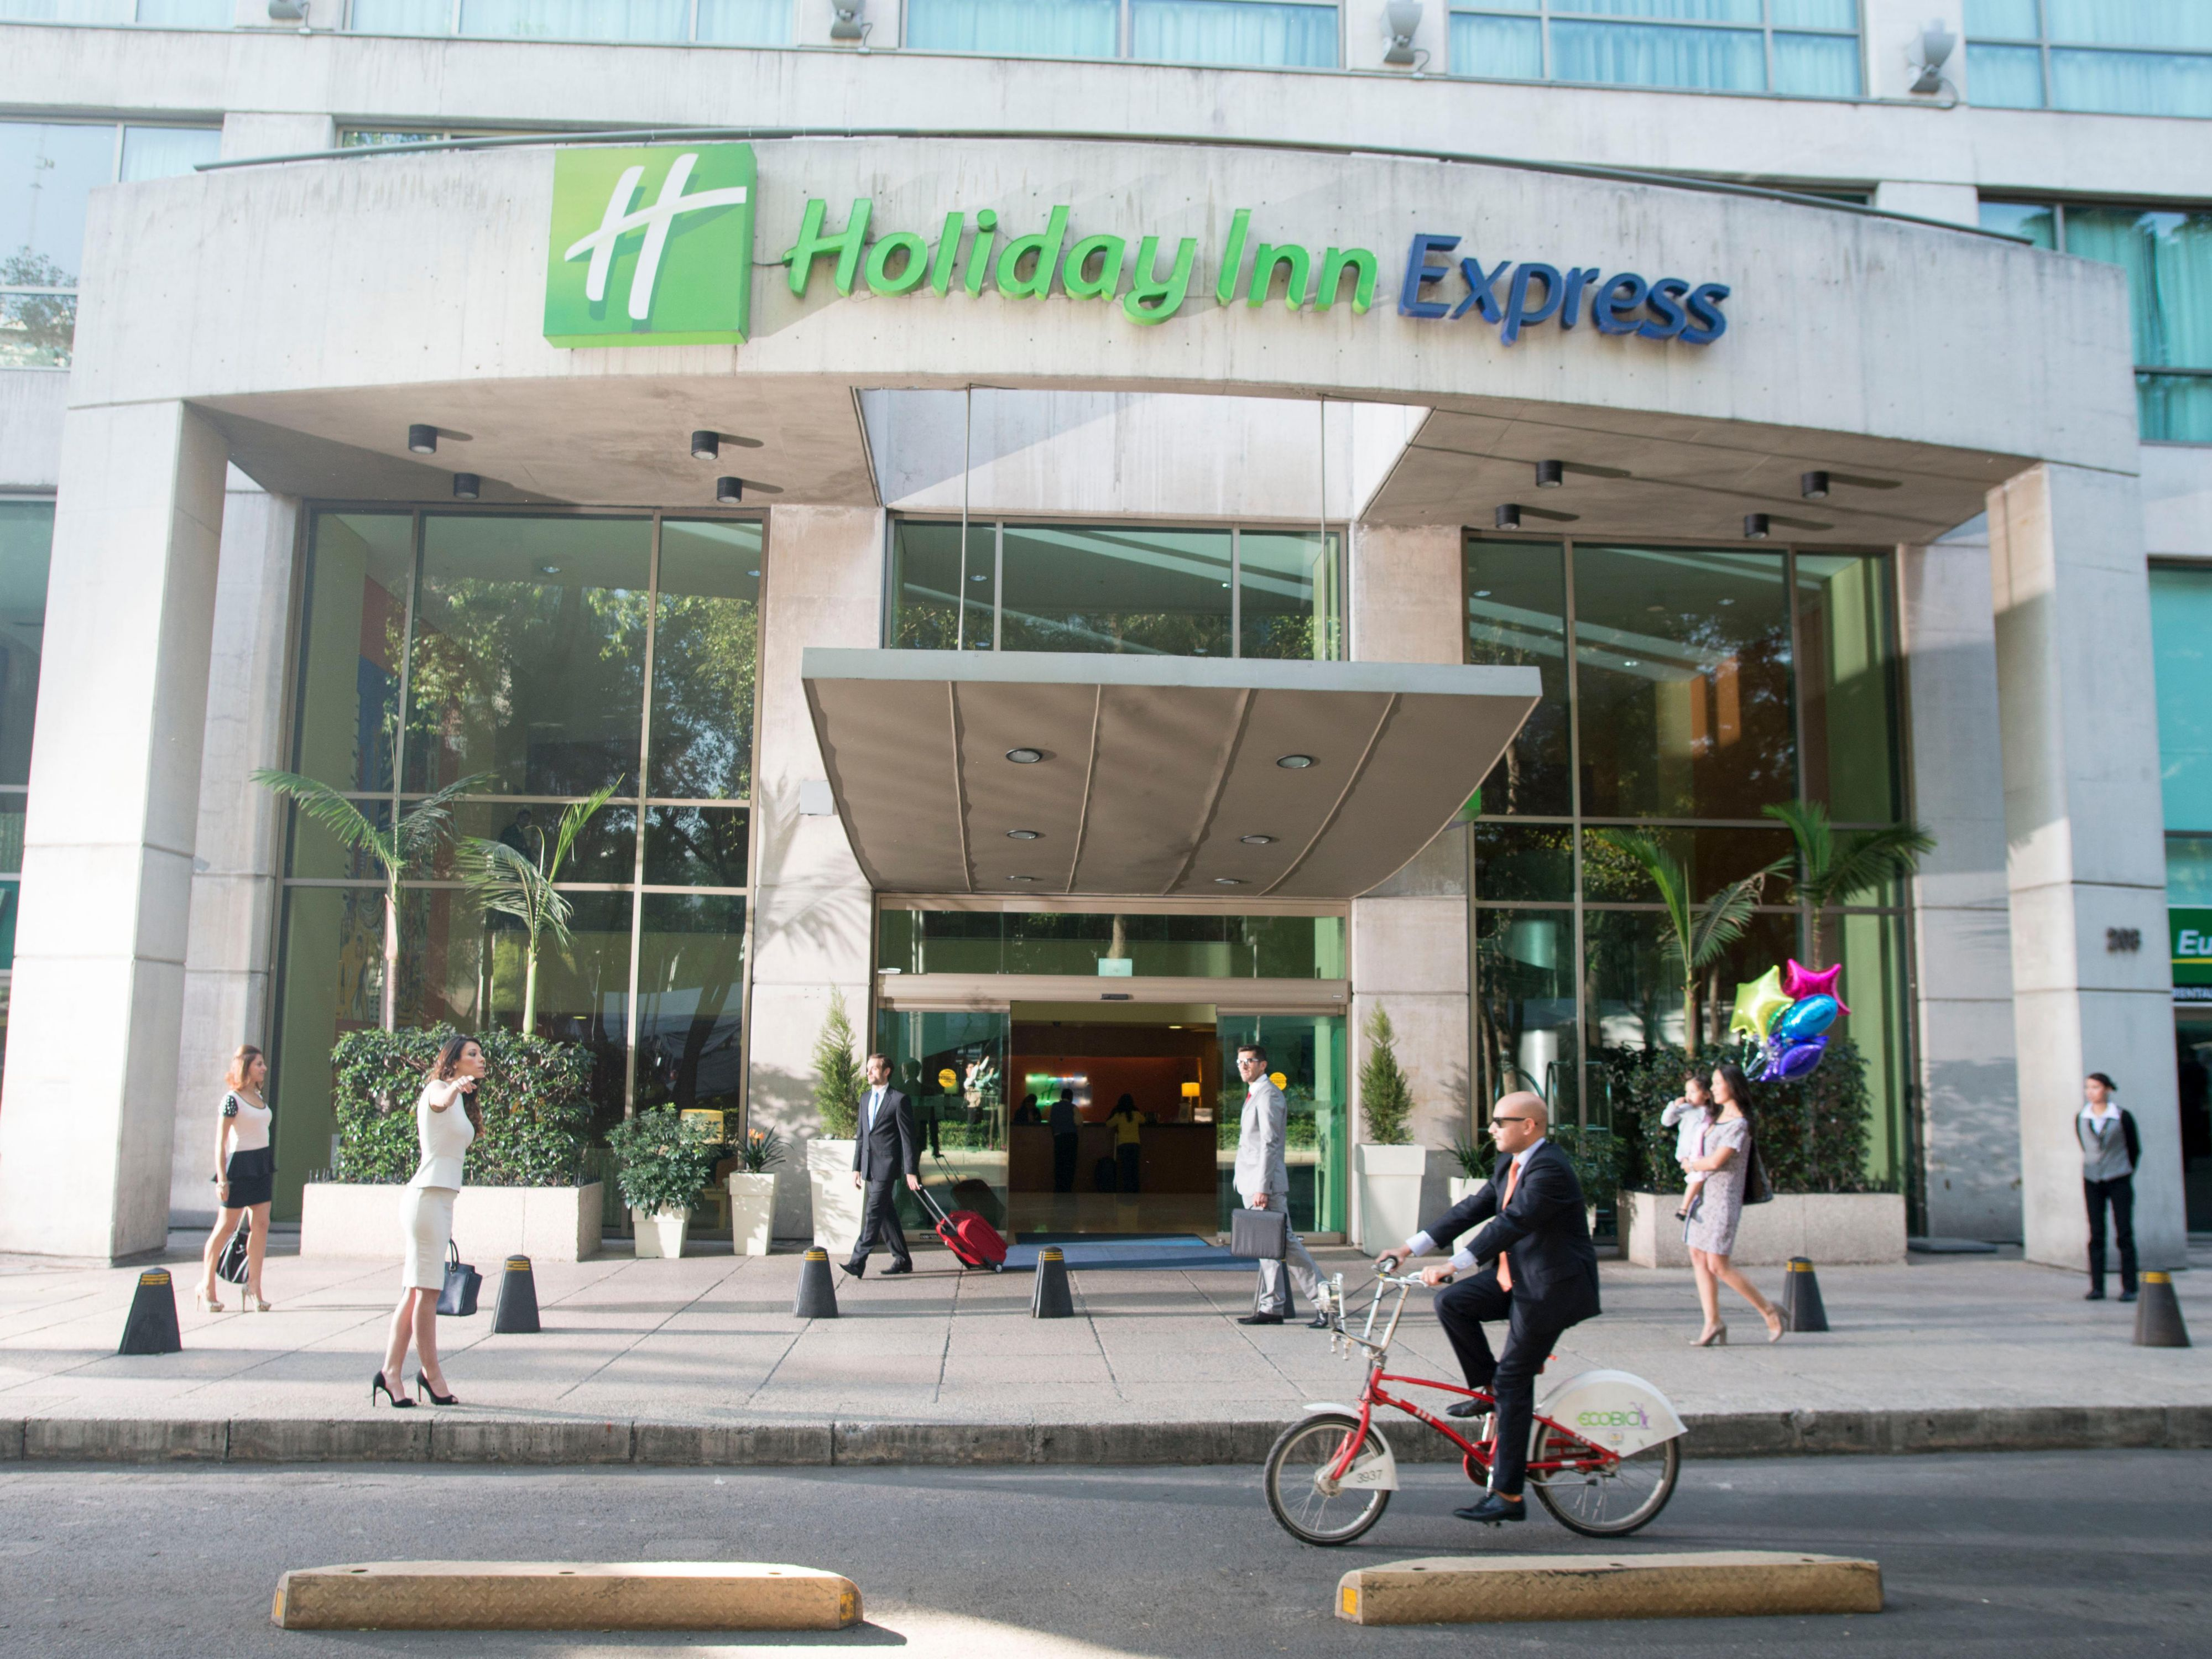 Holiday inn express mexico reforma hotel ihg for Reforma express